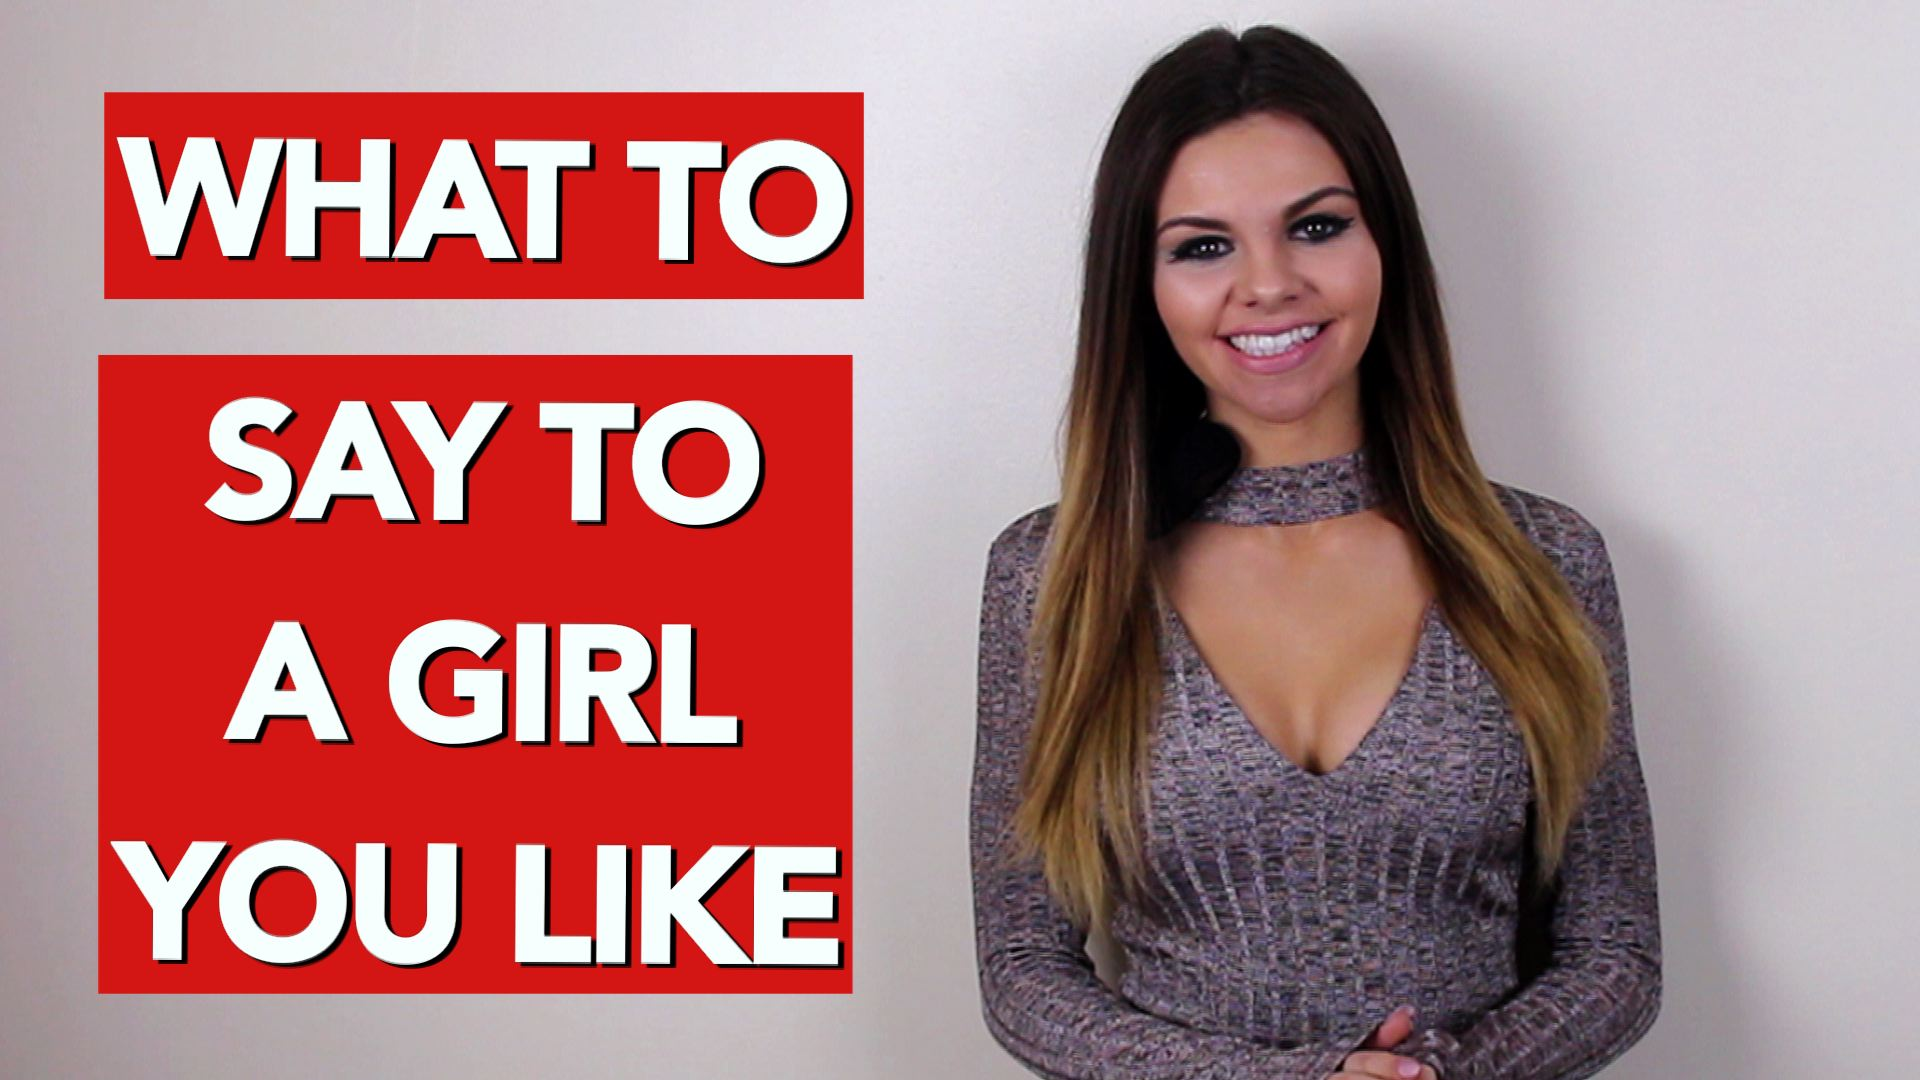 What to say to a girl you like